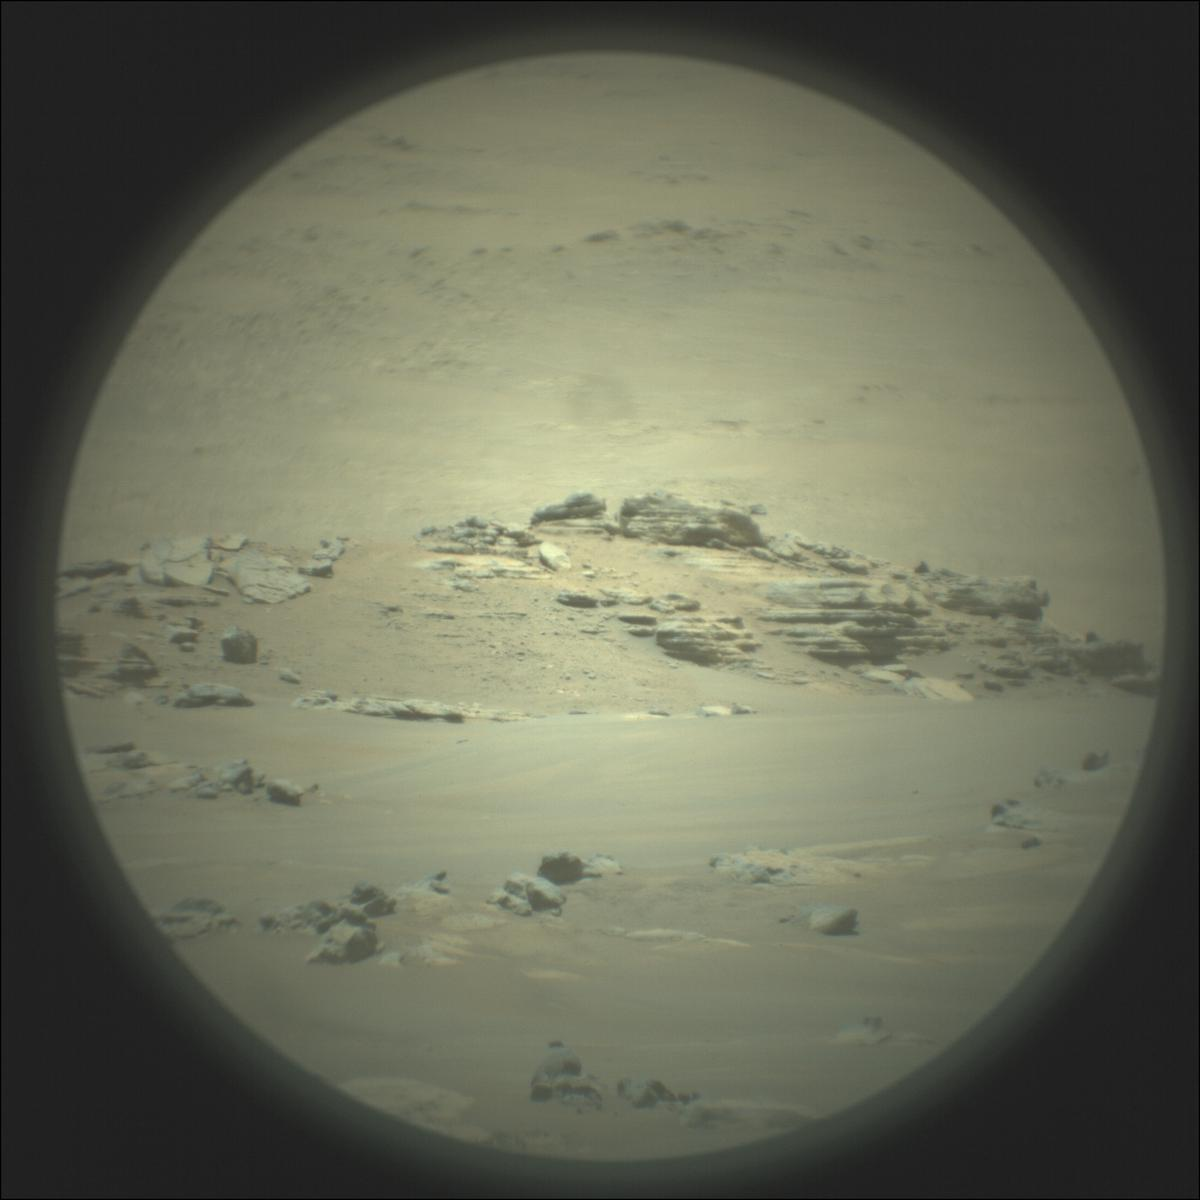 This image was taken by SUPERCAM_RMI onboard NASA's Mars rover Perseverance on Sol 96